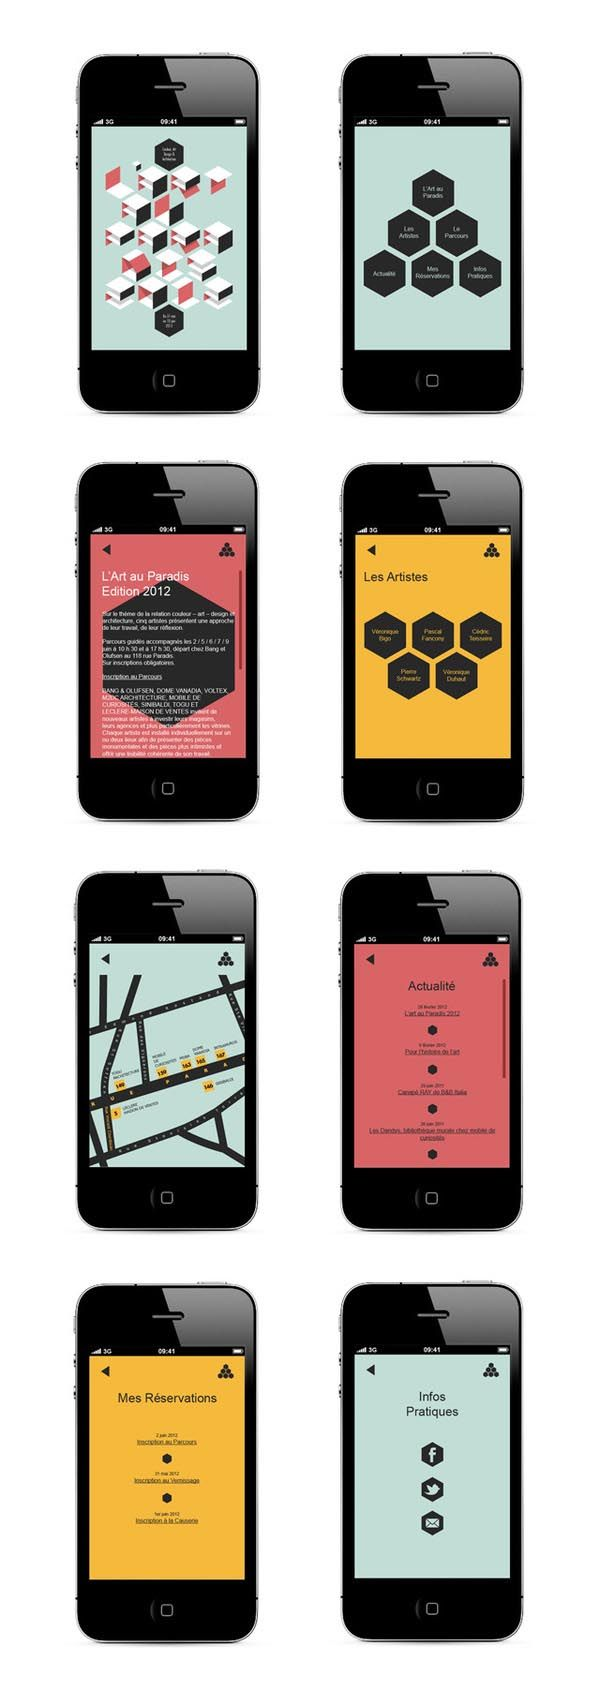 L'Art au Paradis 2012 Mobile Application Design by Ultradigital